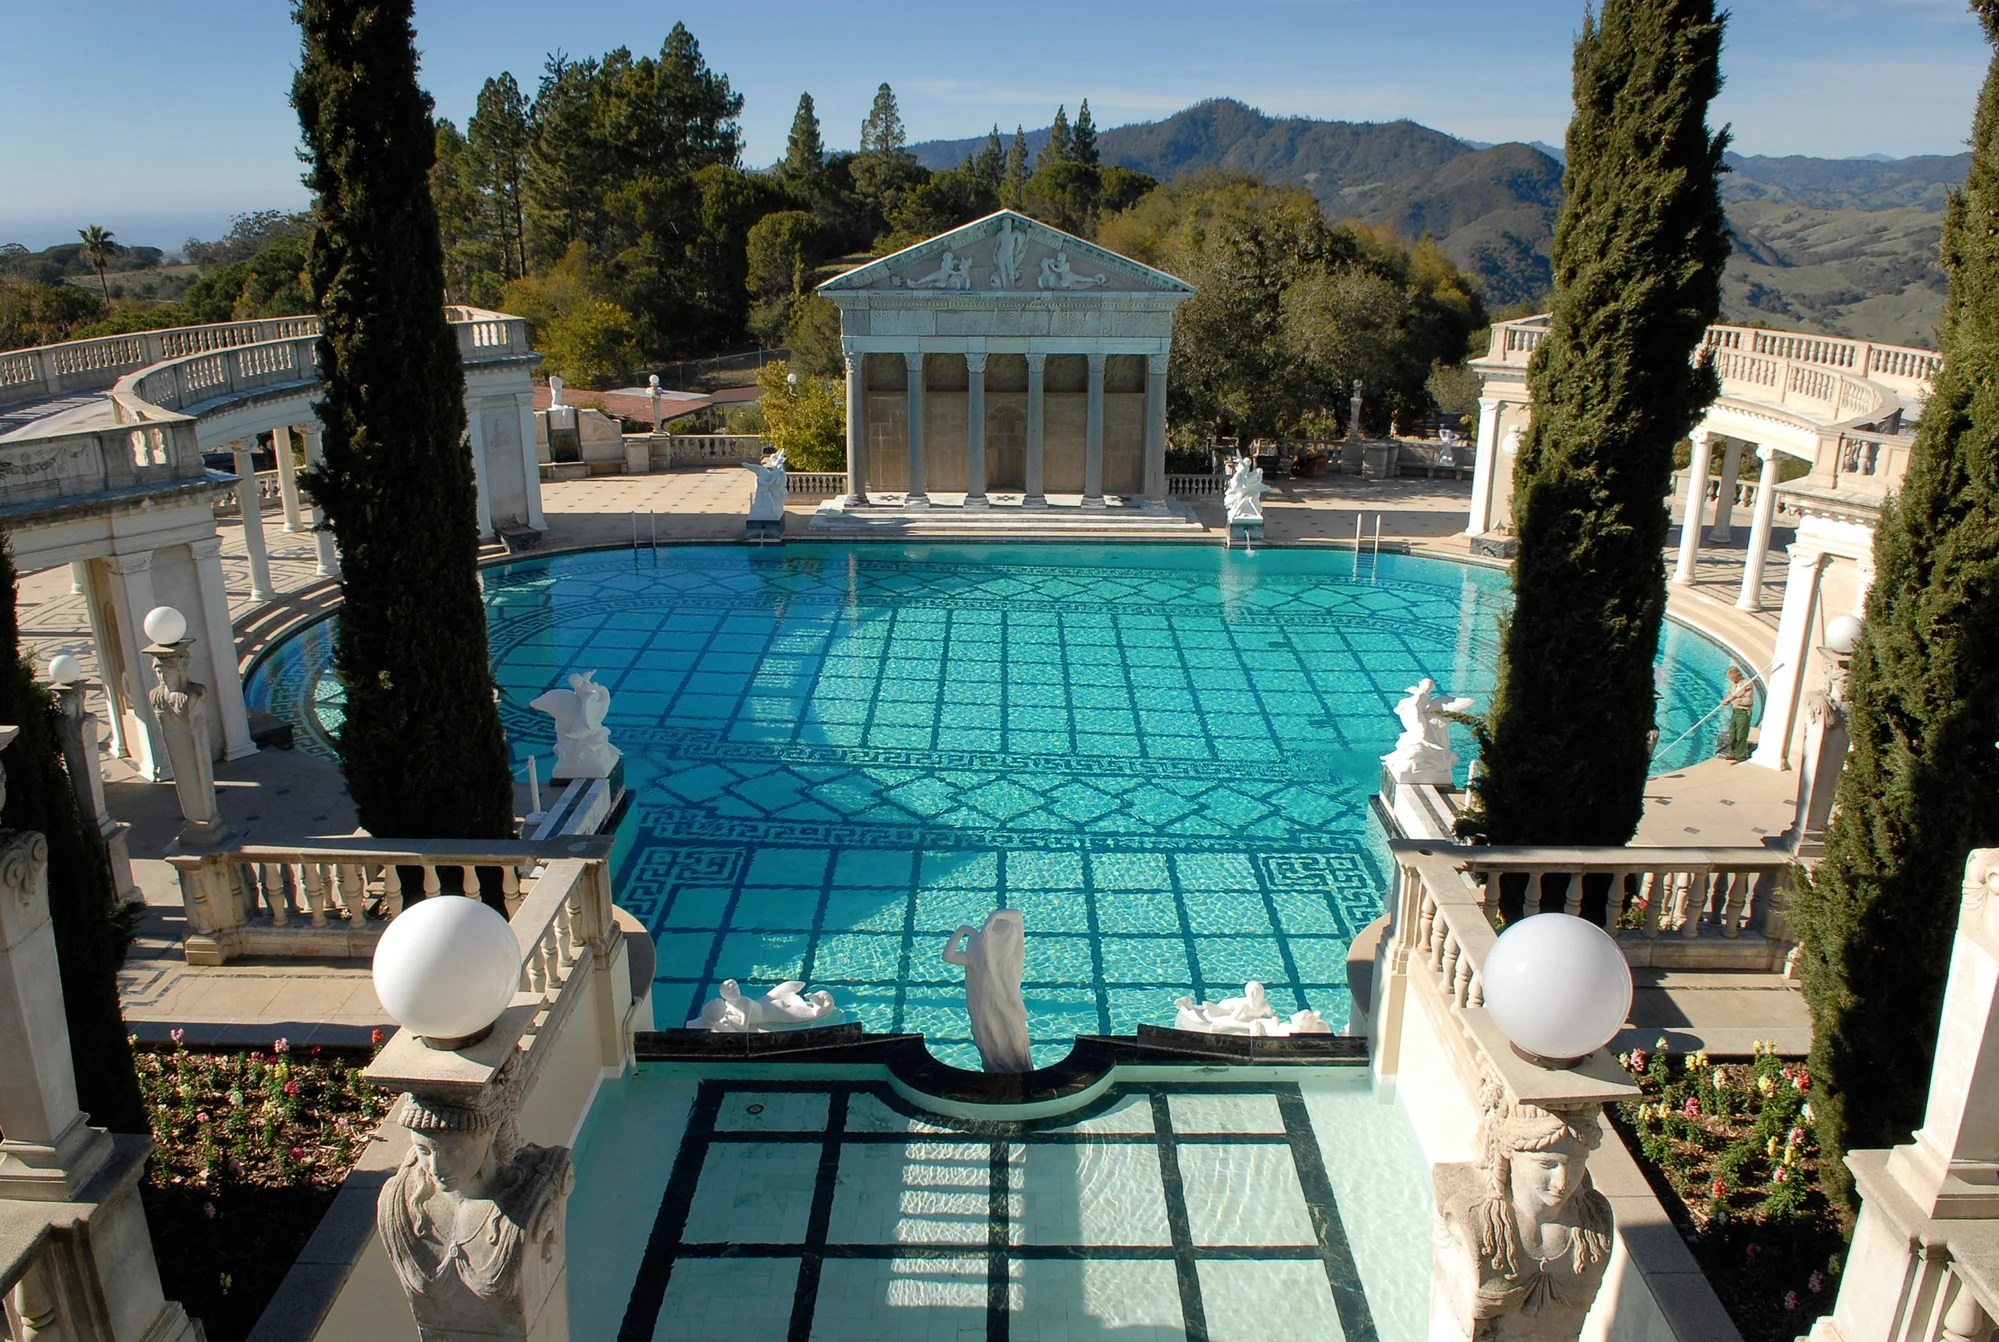 Hearst Castle: Tours & Tips for Visiting - The Points Guy